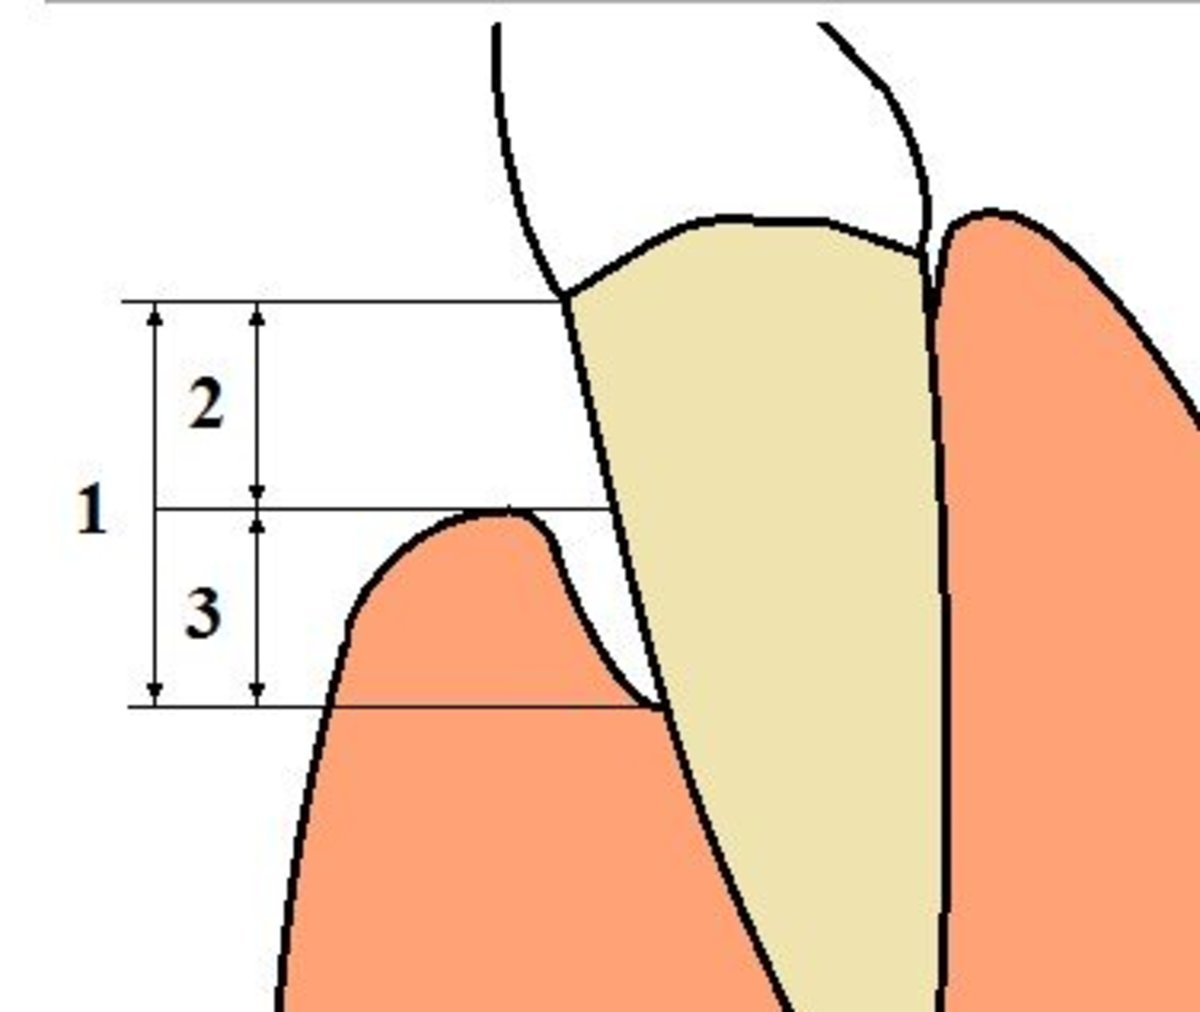 An example of gingival recession. Loss of supporting structure in advanced periodontal disease.